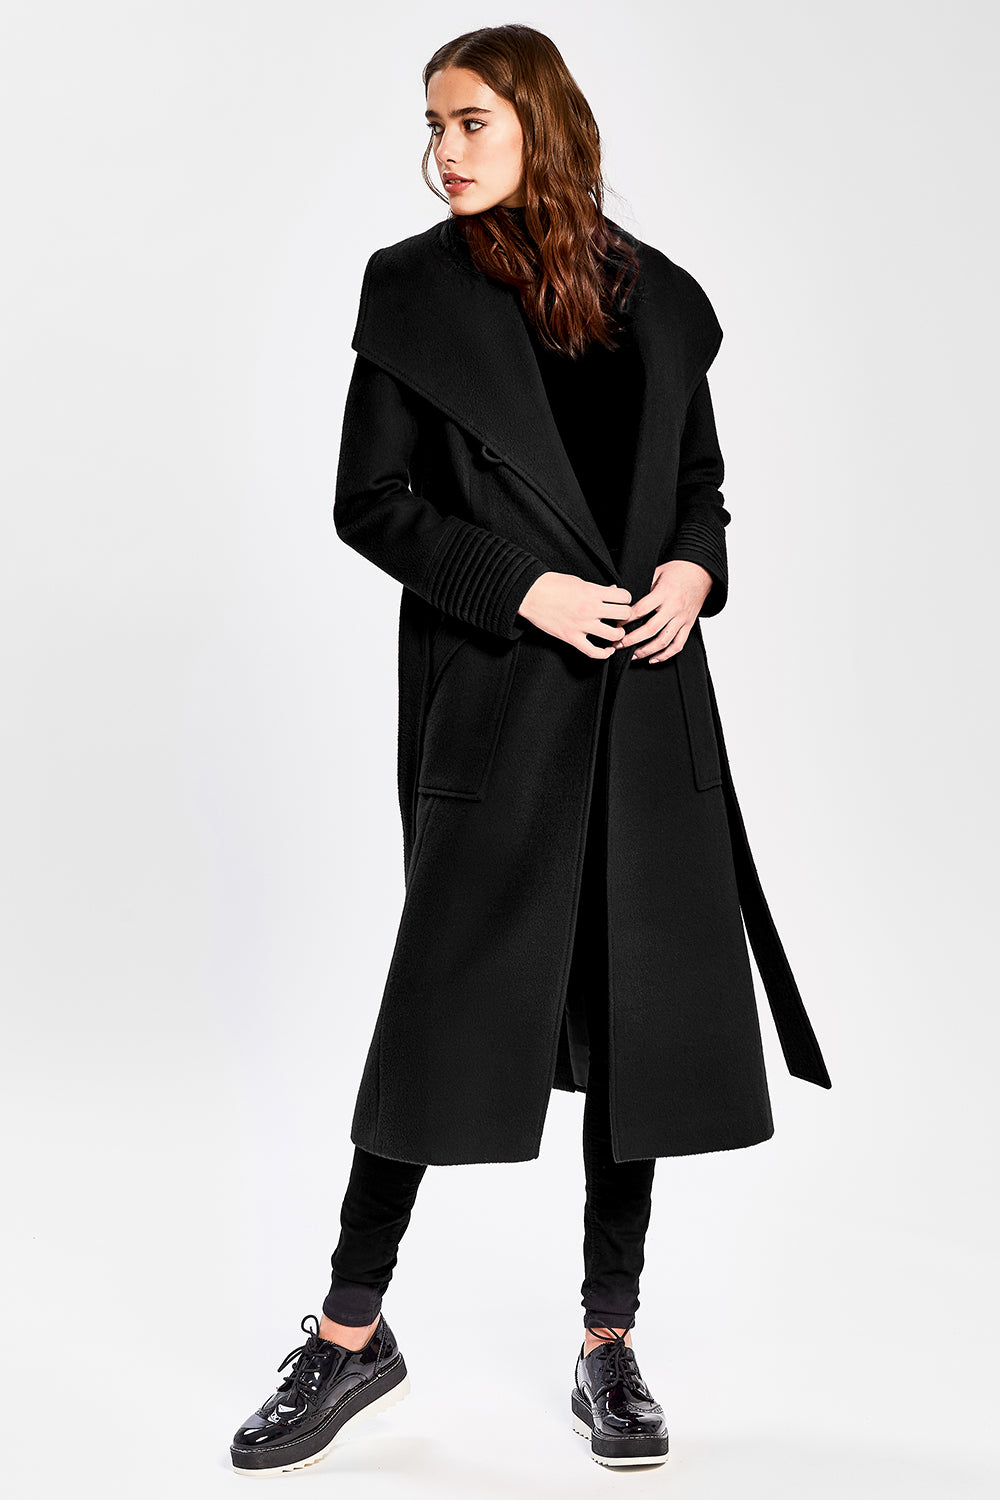 Sentaler Long Wide Collar Wrap Coat featured in Baby Alpaca and available in Black. Seen open.